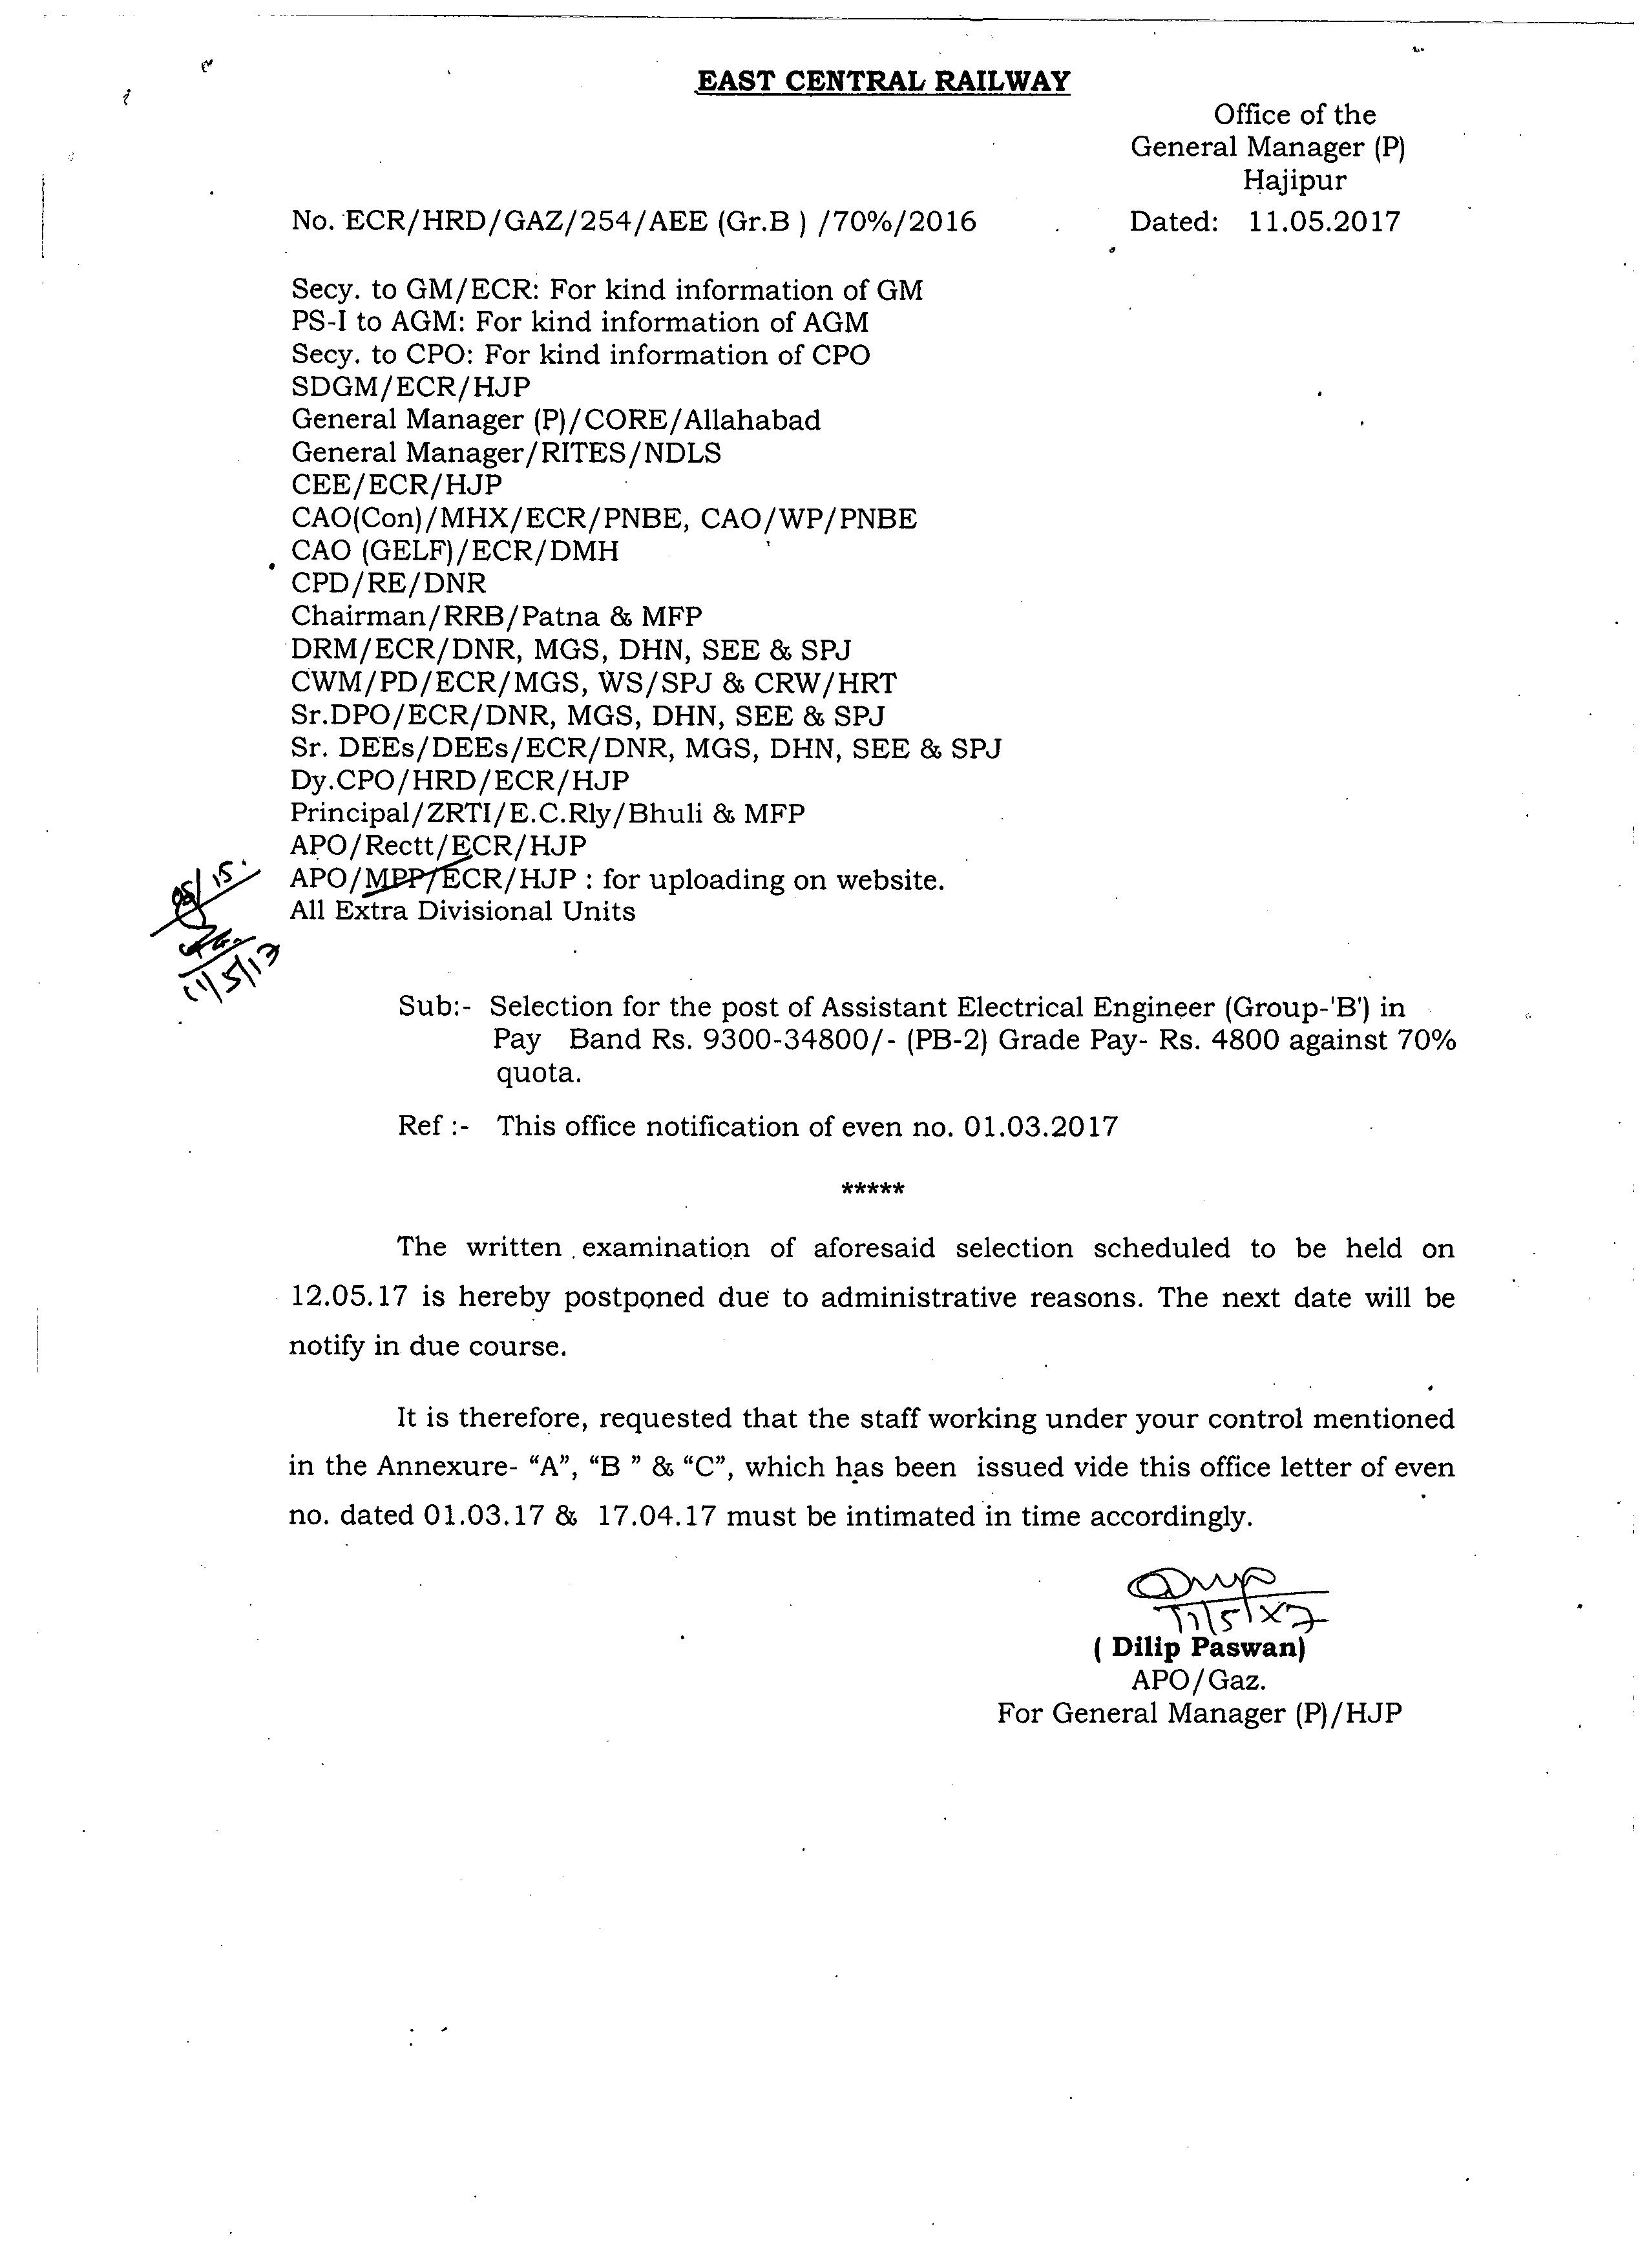 (pb2)grade Pay Rs 4800 Against 70% Quota Dt 11052017